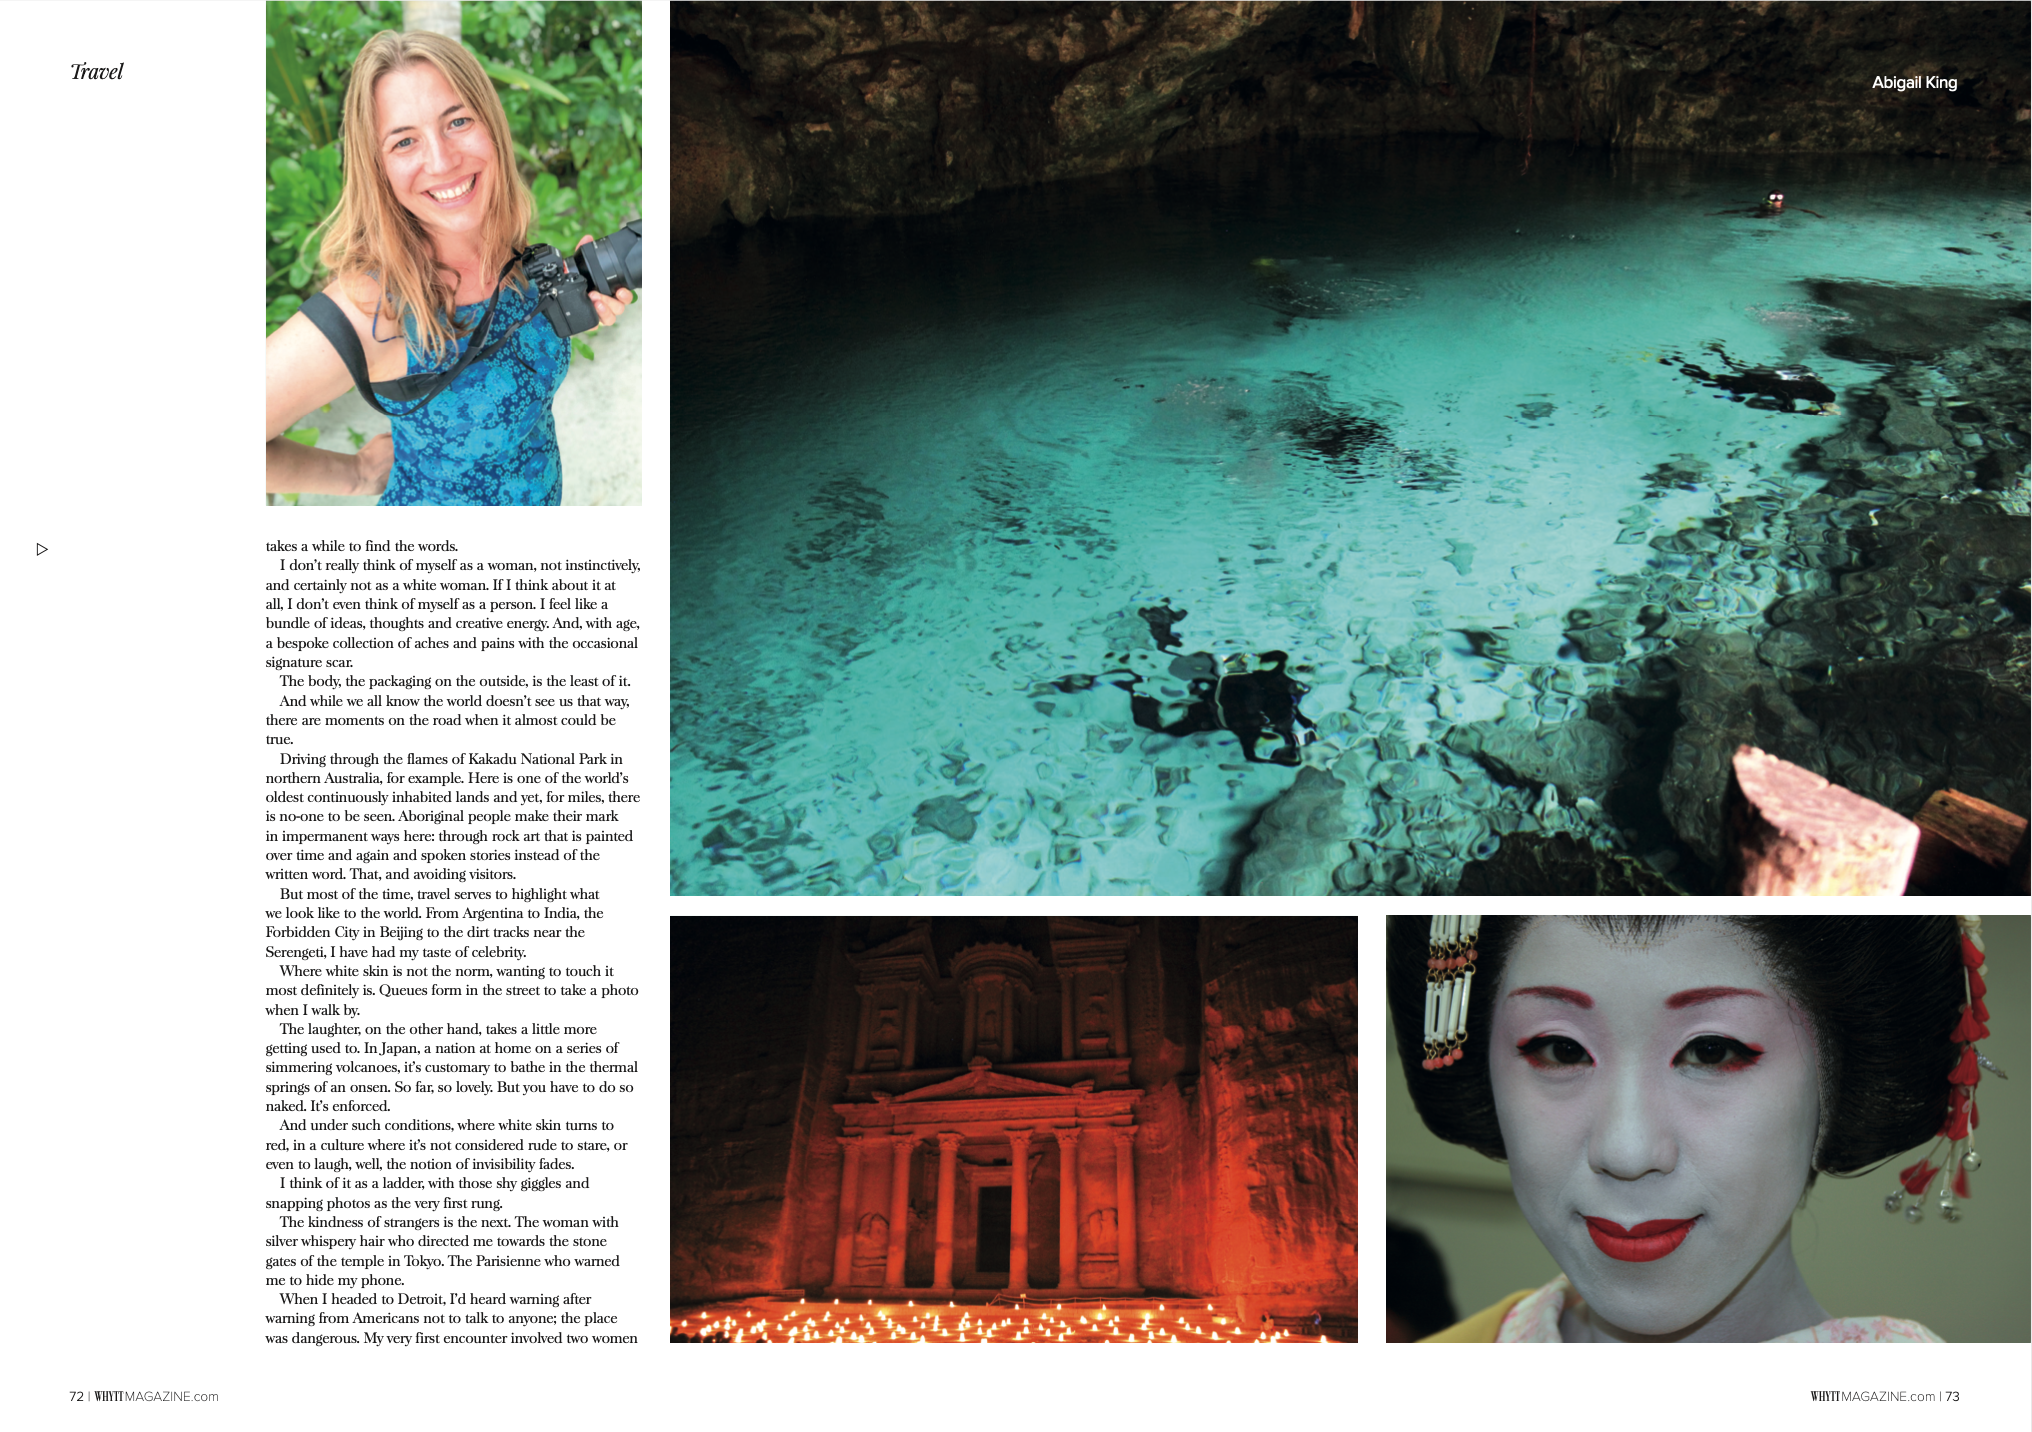 Second page from Abigail King's travel feature in Whytt Magazine